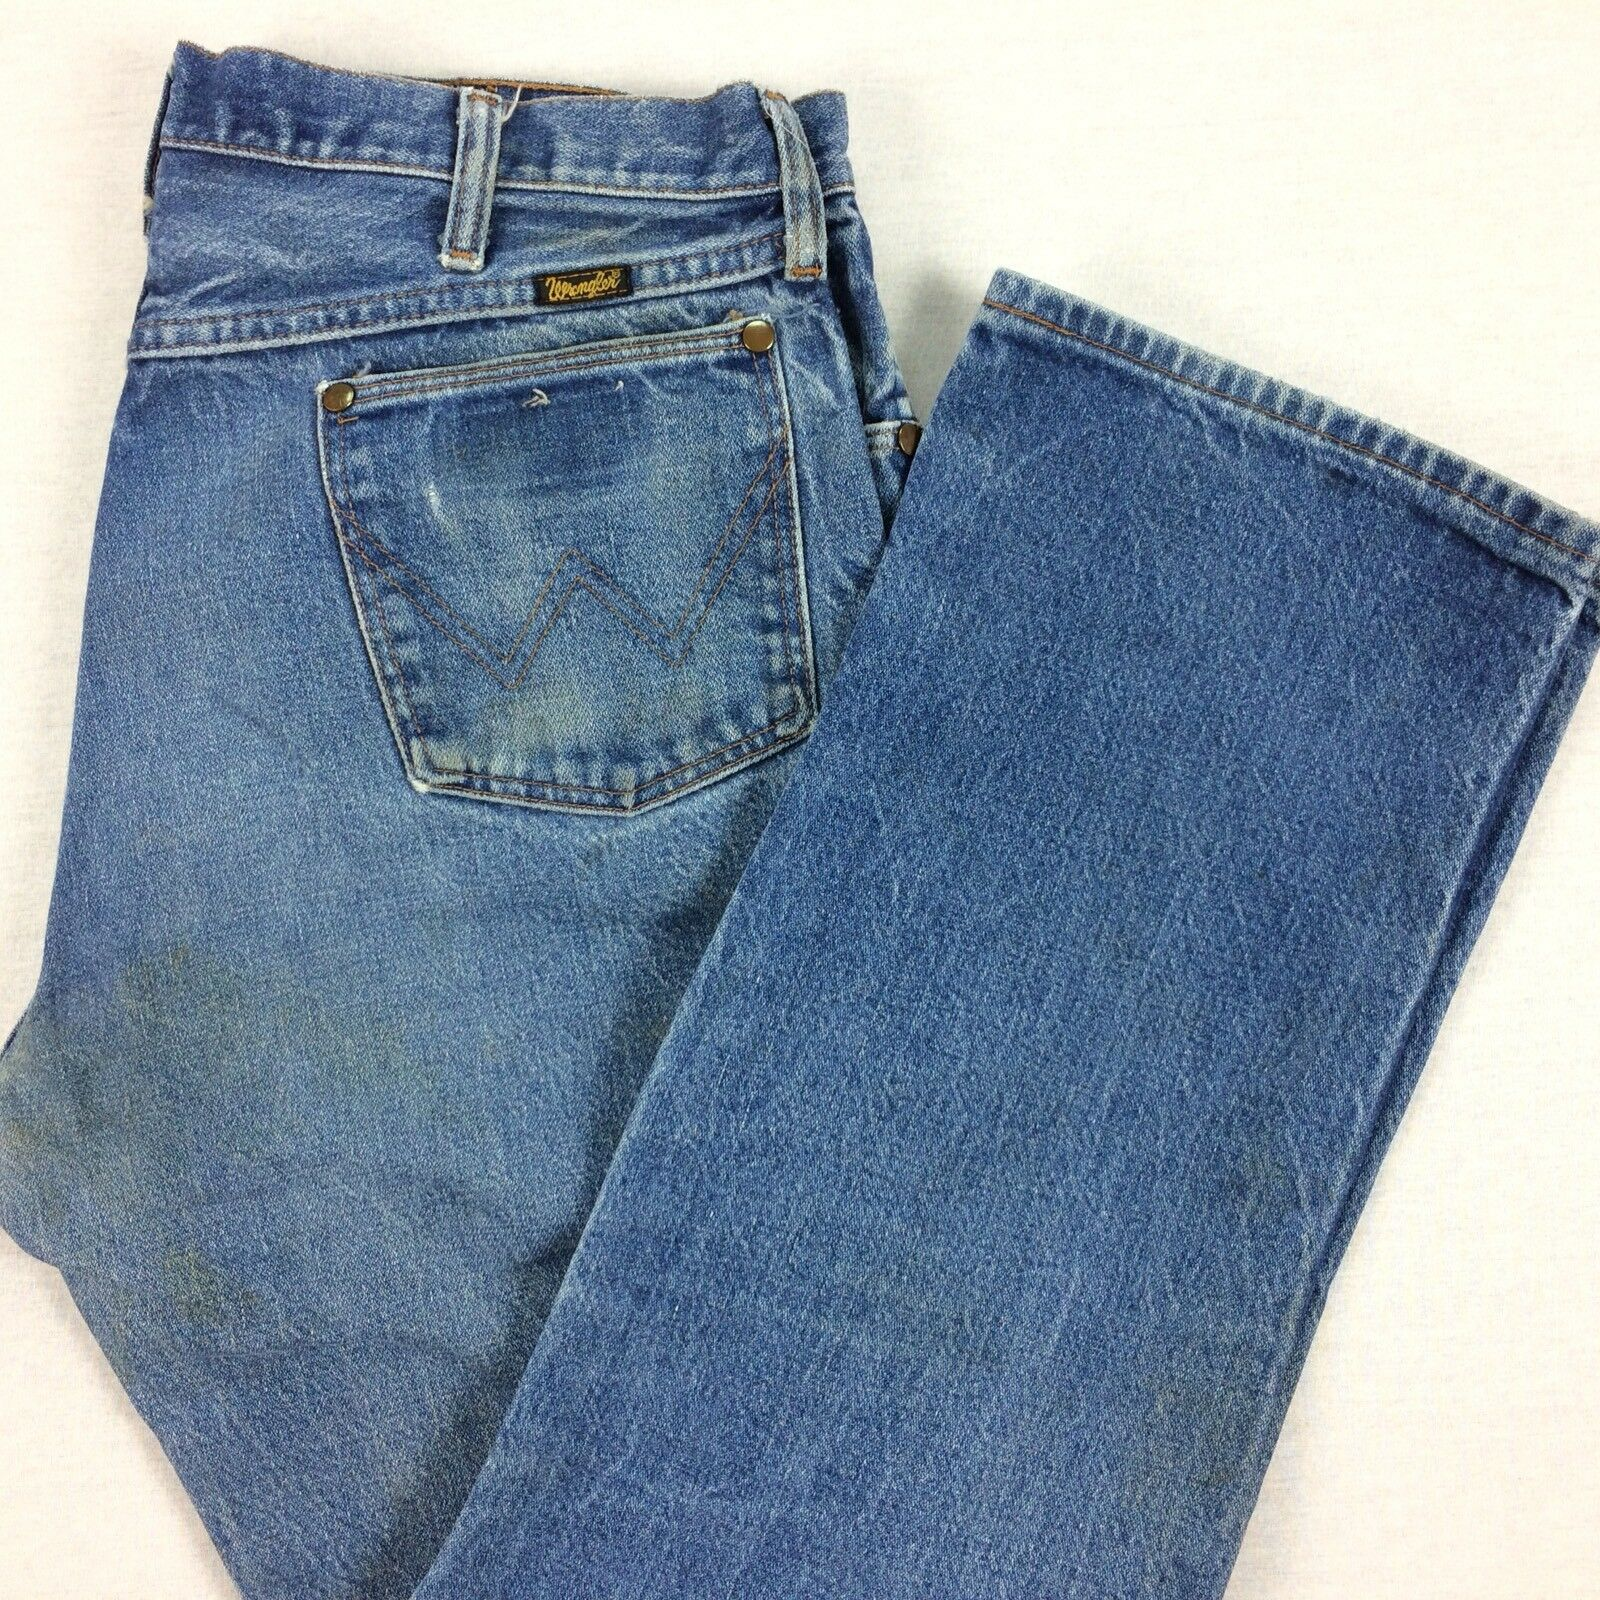 Vtg USA Made Distressed WRANGLER Jeans Mens 34 x 29 Nicely Faded Medium Wash